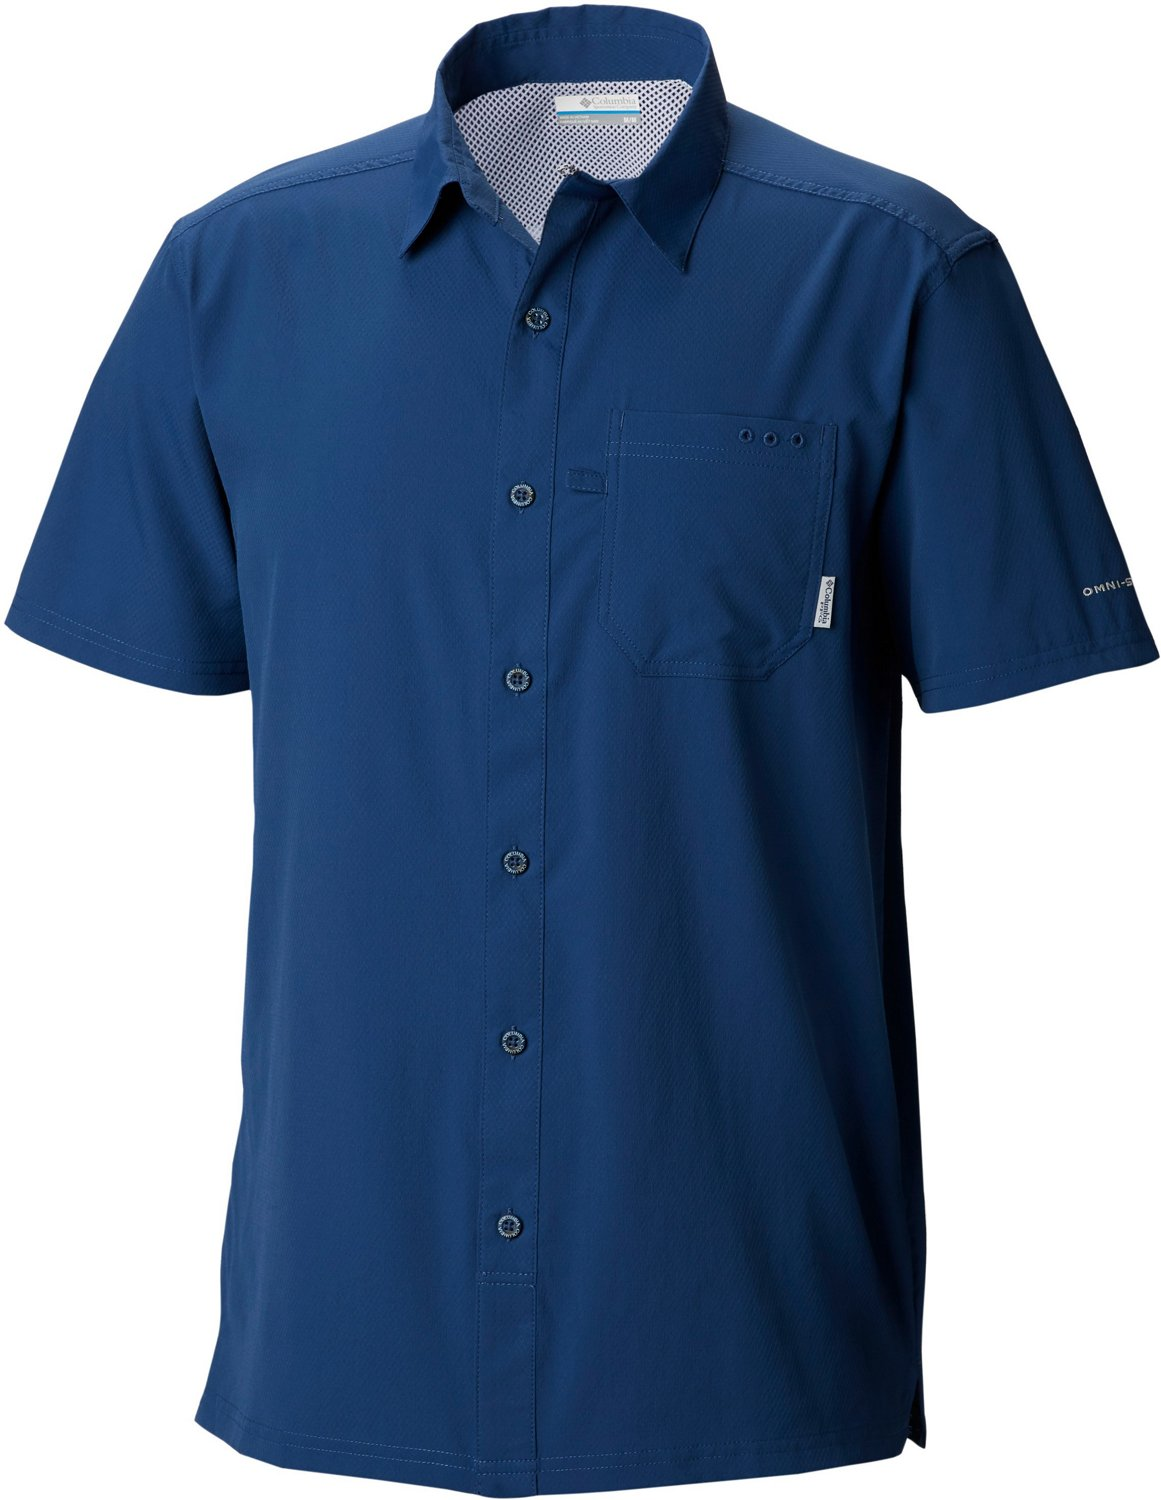 09ff4393bb366 Display product reviews for Columbia Sportswear Men s Slack Tide Camp  Button Down Shirt